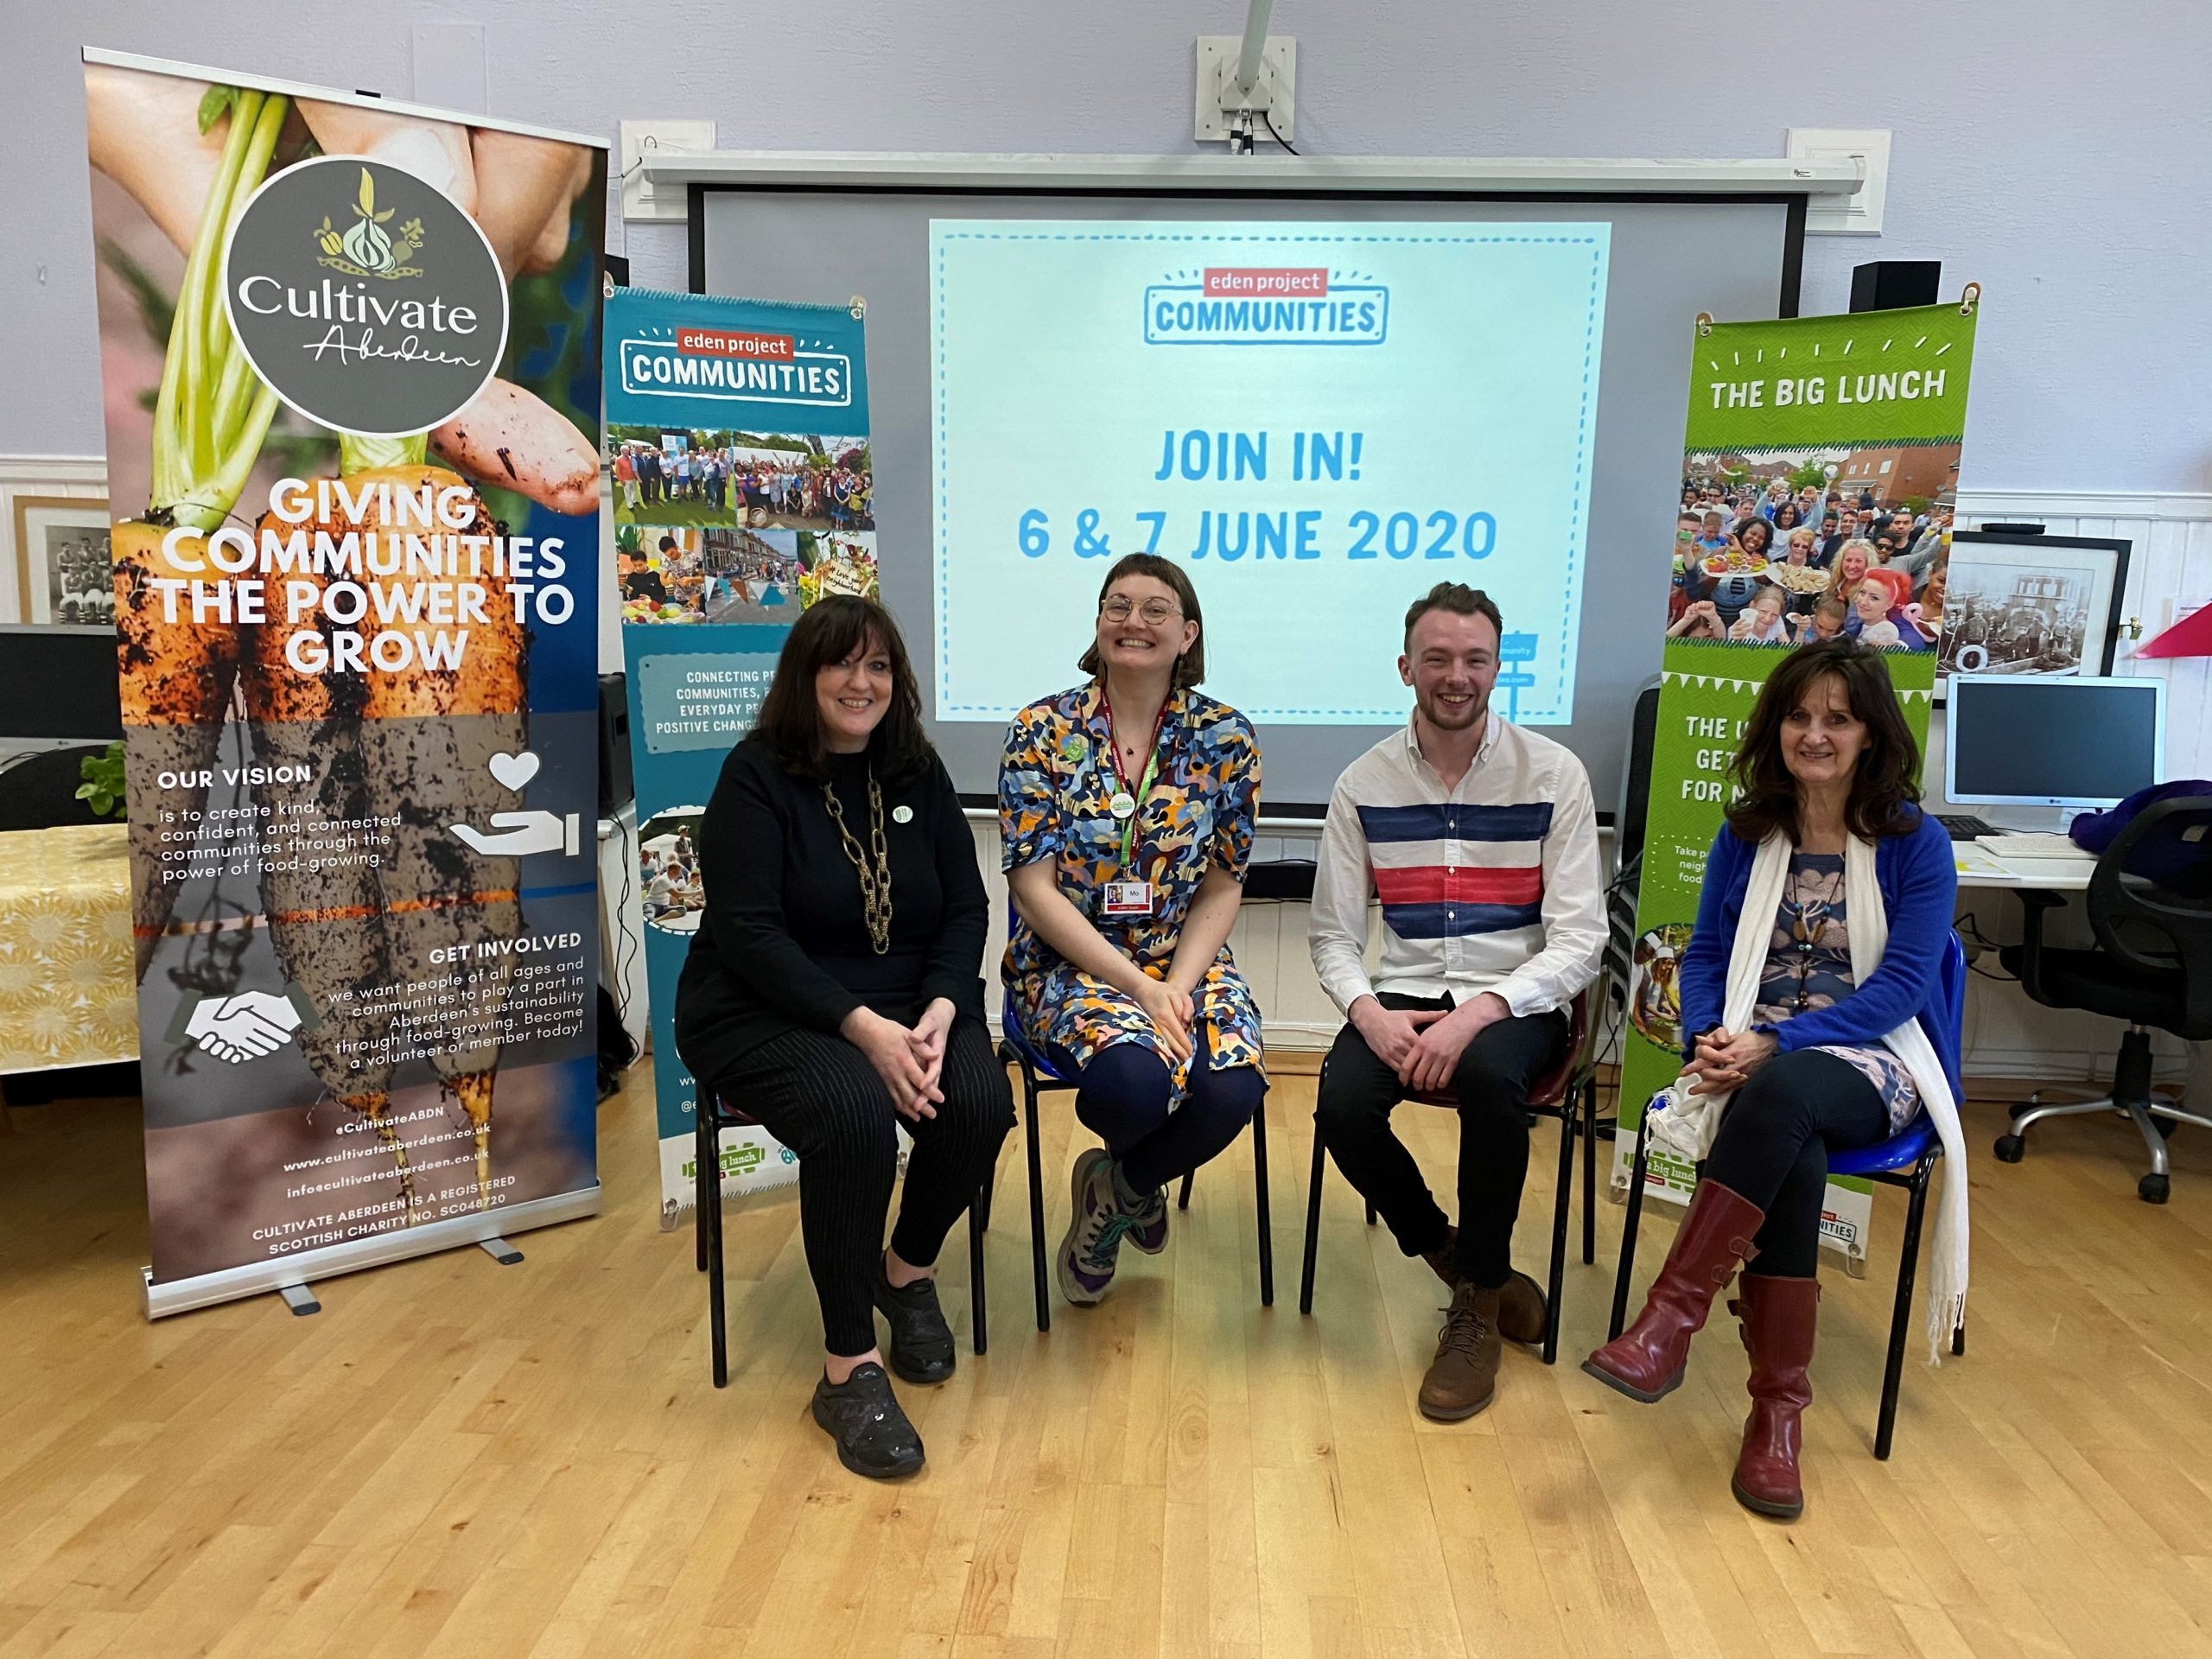 Lesley-Anne Mulholland, Mo Odling (from Eden Project Communities), George Bellamy, and Teresa Dufficy at the St Fitticks Big Lunch Launch